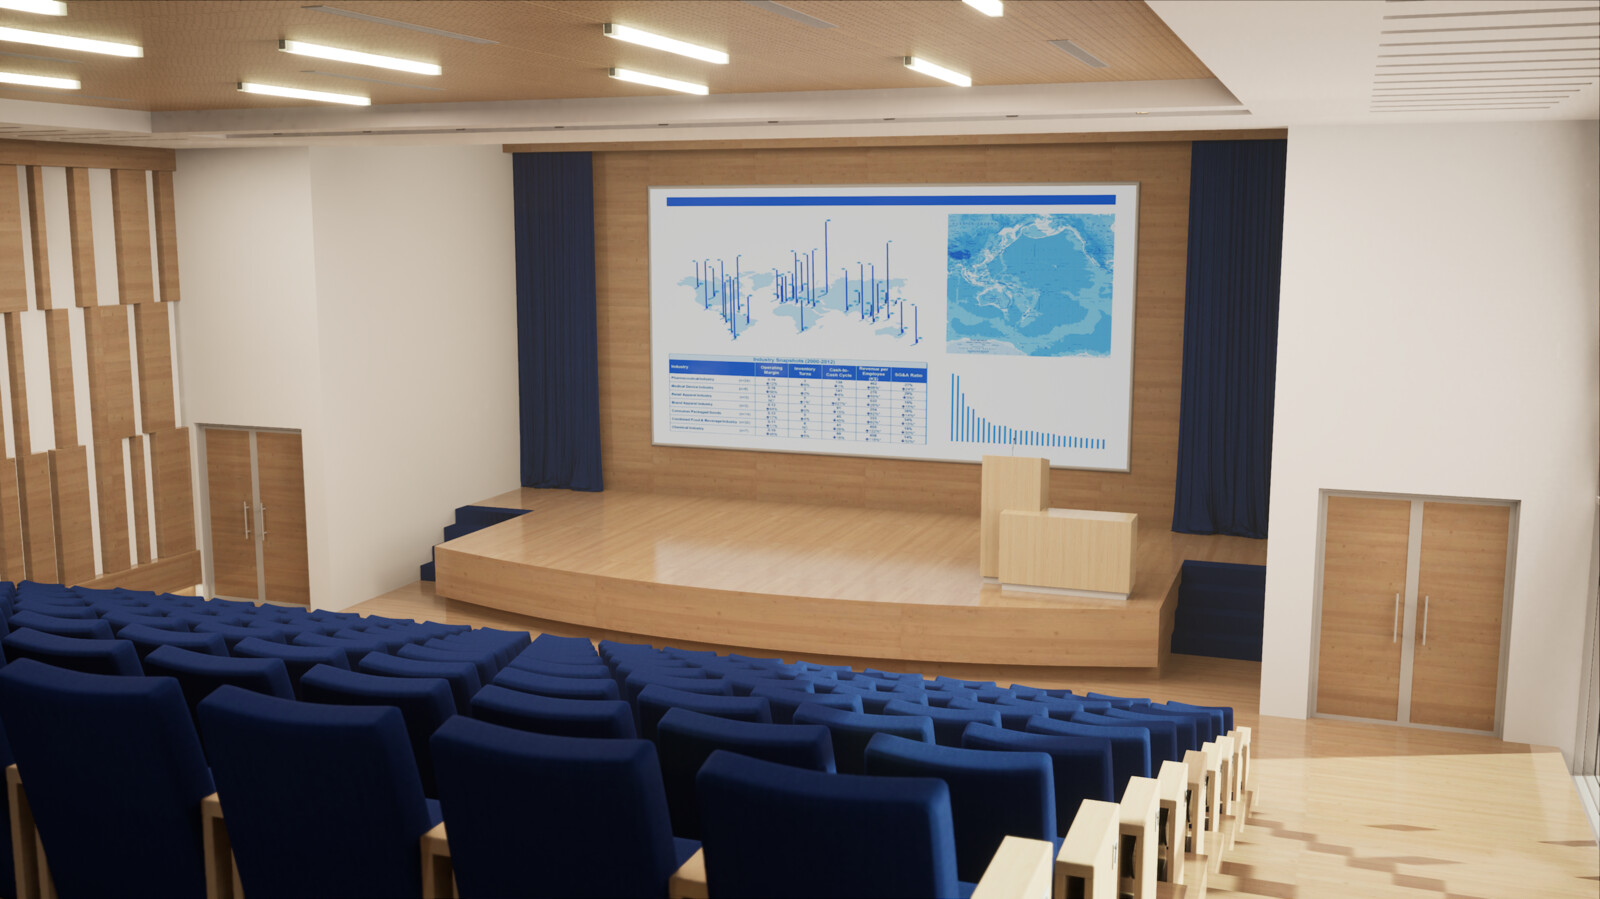 Conference hall, Done with Unreal engine 4.24 RTX